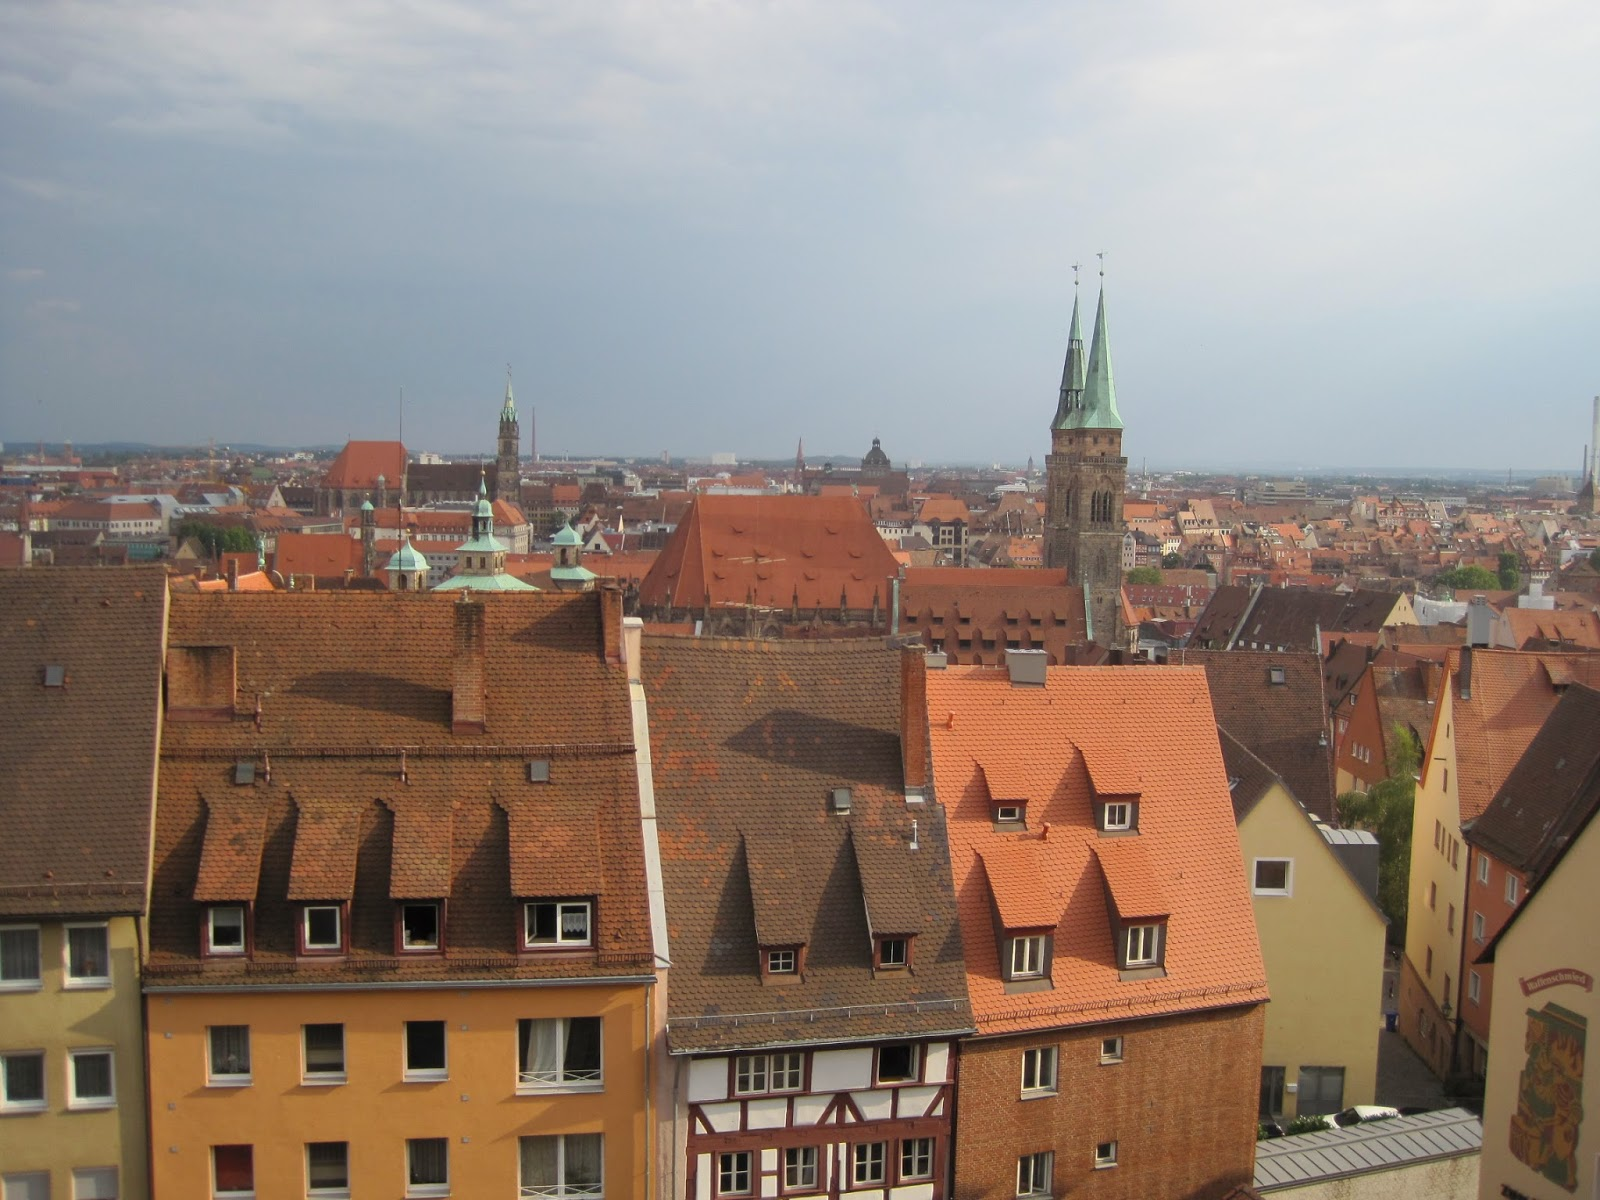 The view from Nuremberg Castle